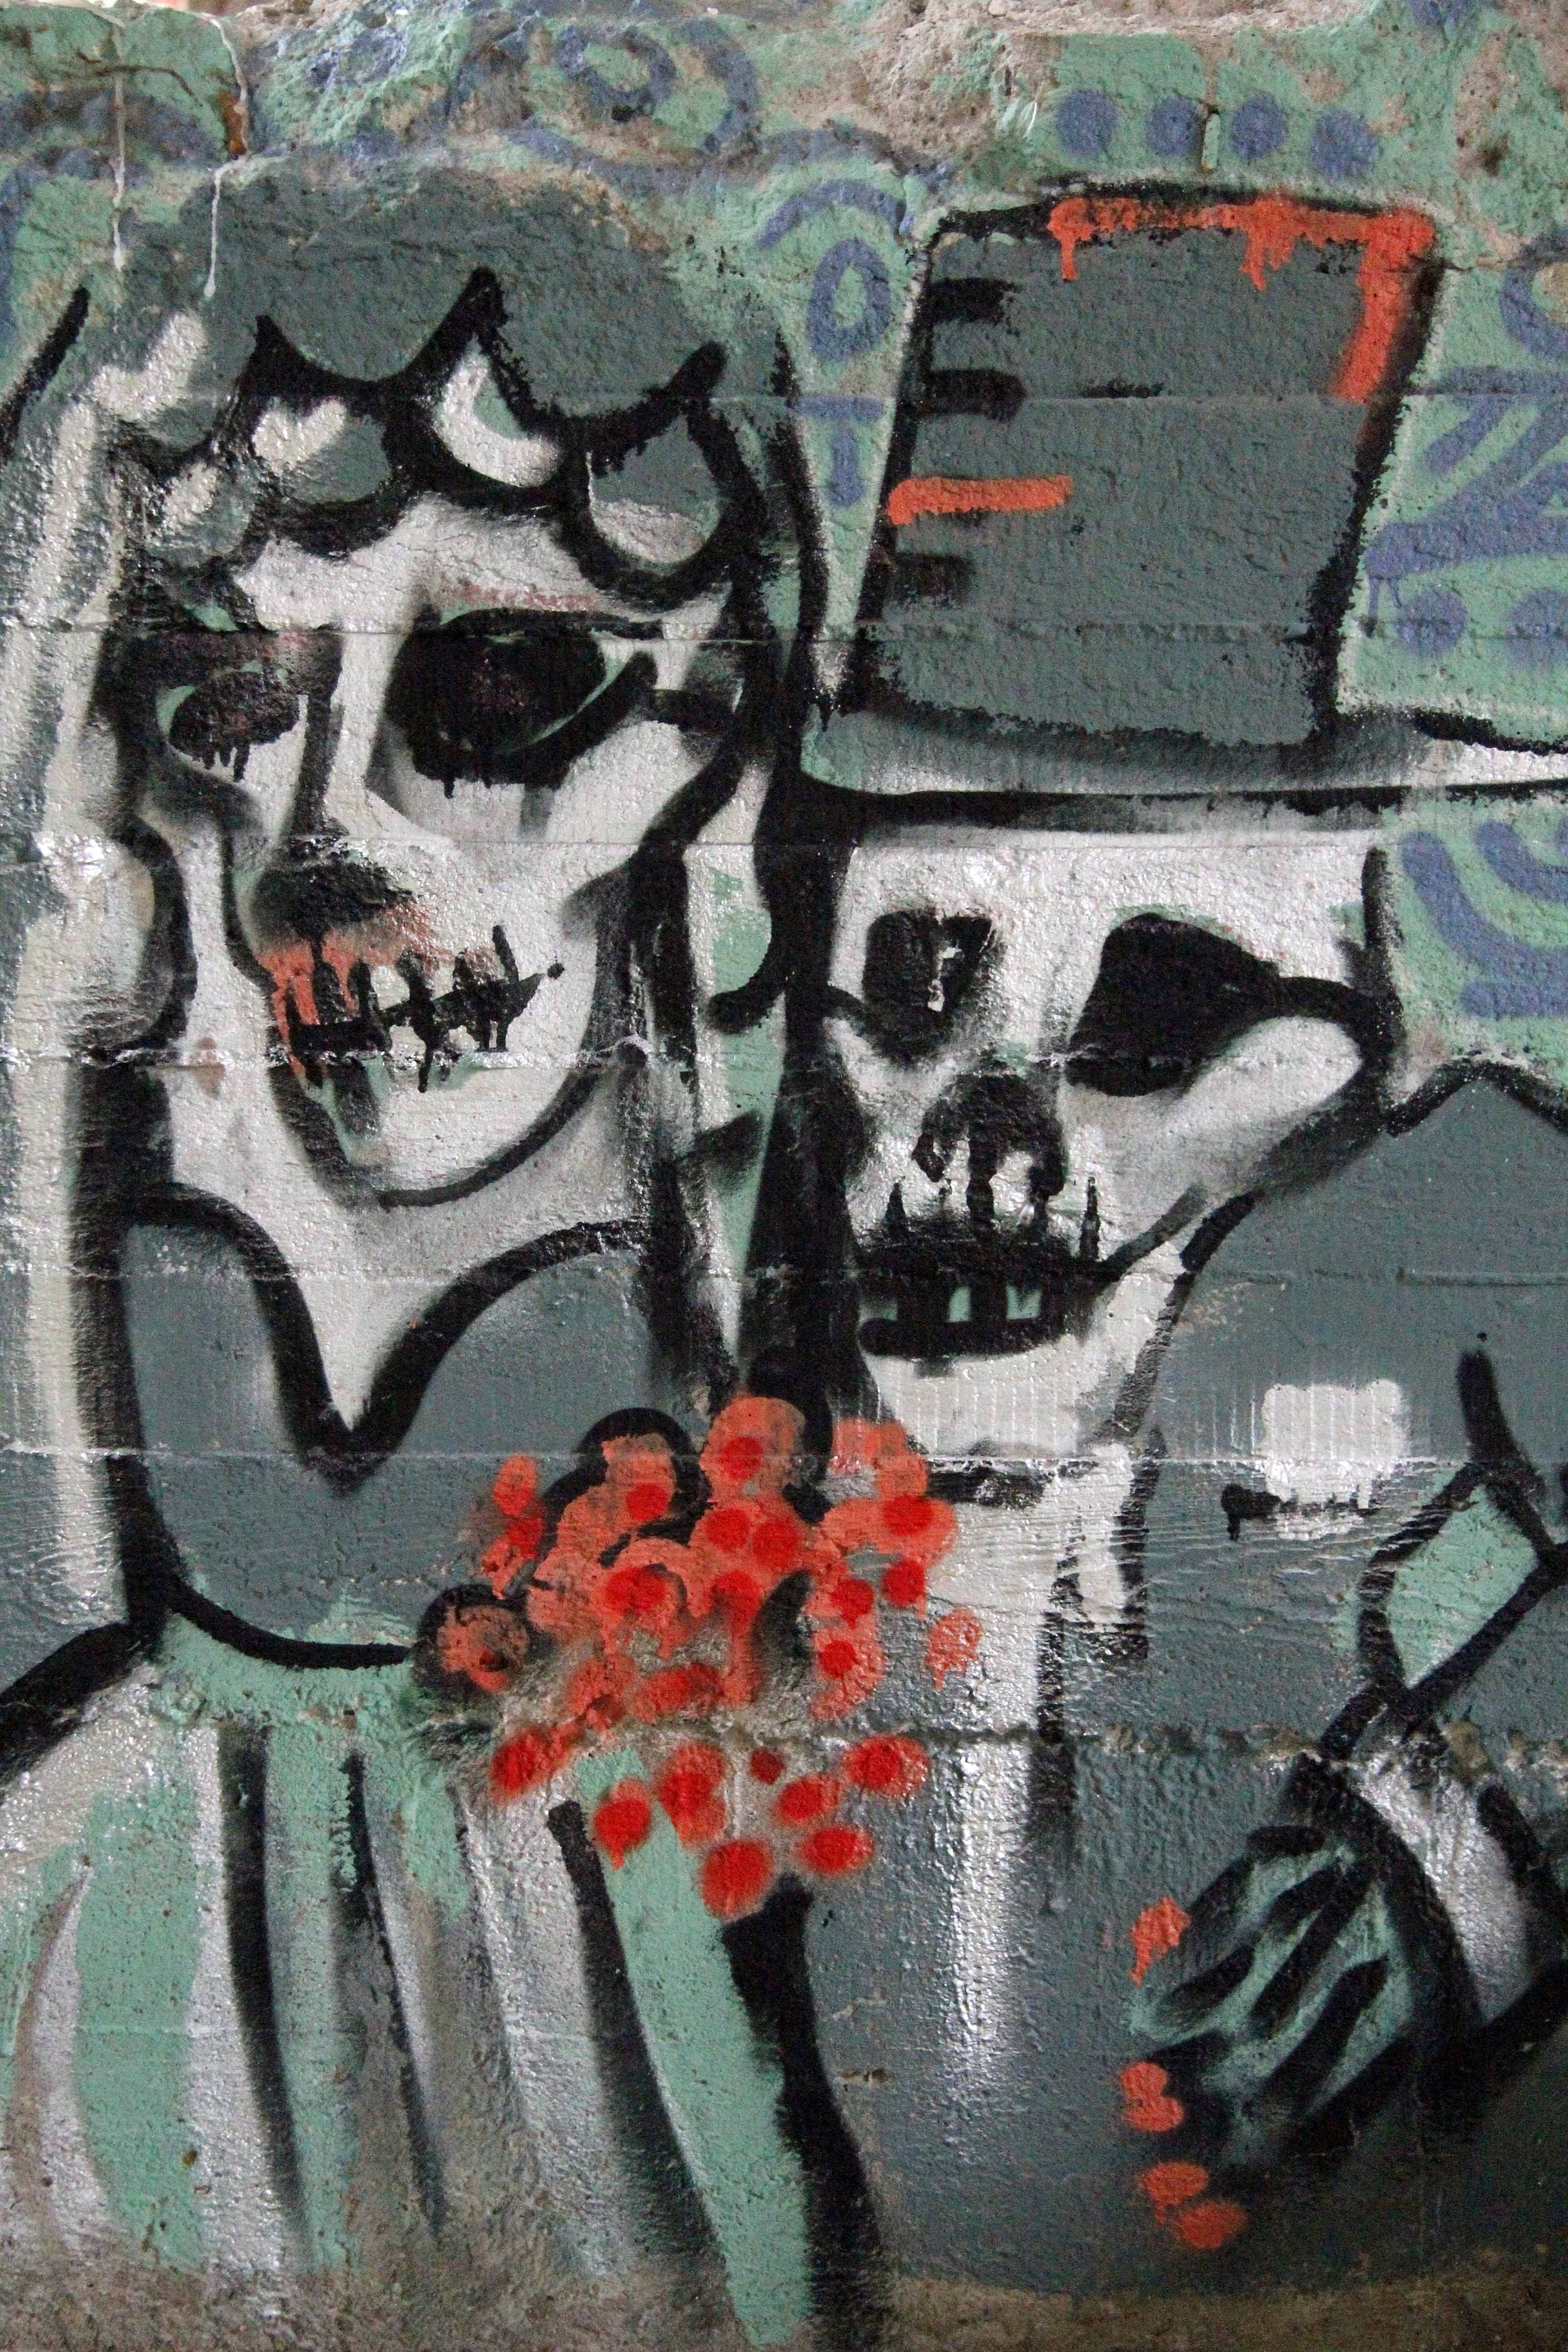 Till Death Do Us Part: Street Art by Unknown Artist at Papierfabrik Wolfswinkel near Berlin